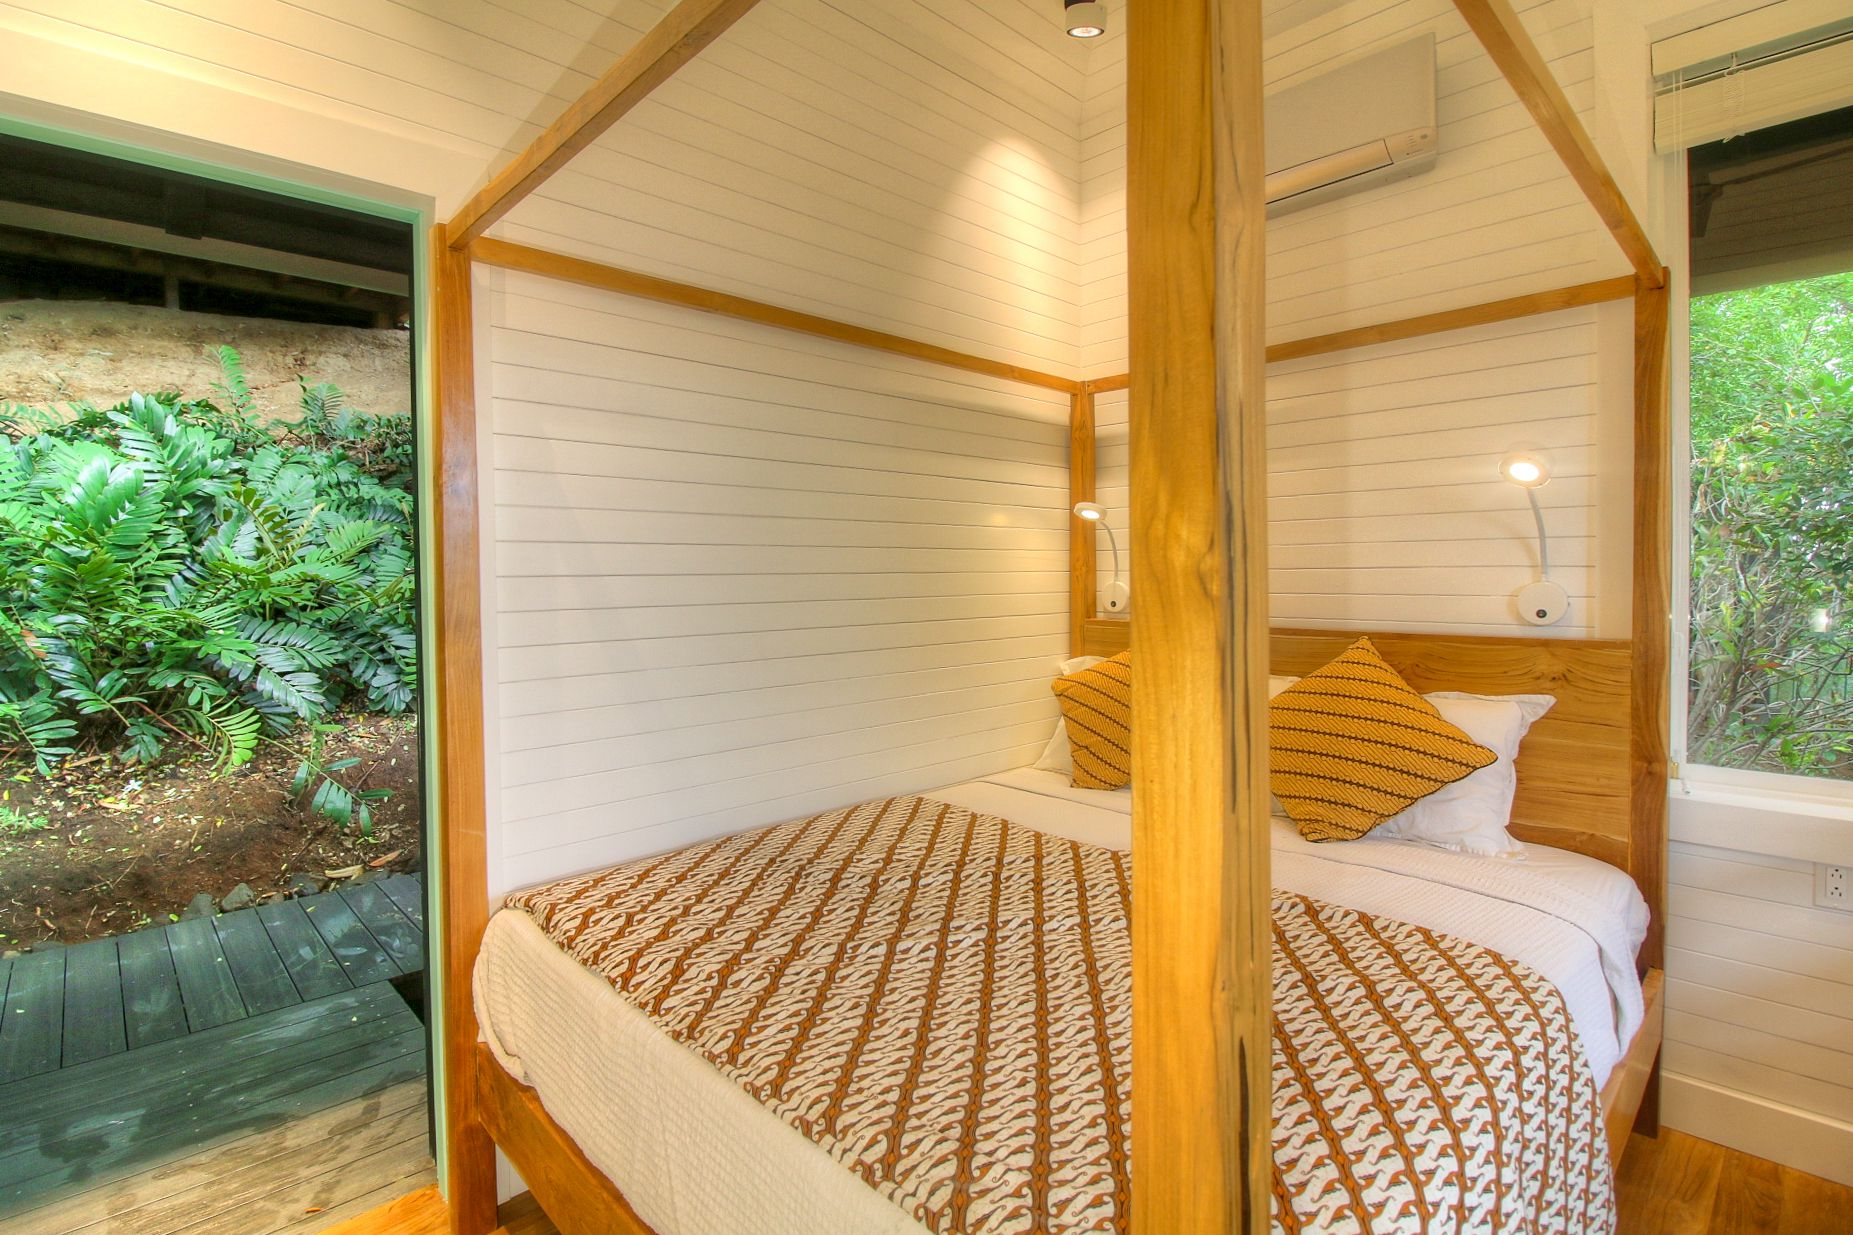 A private vacation cottage bedroom at El Chante